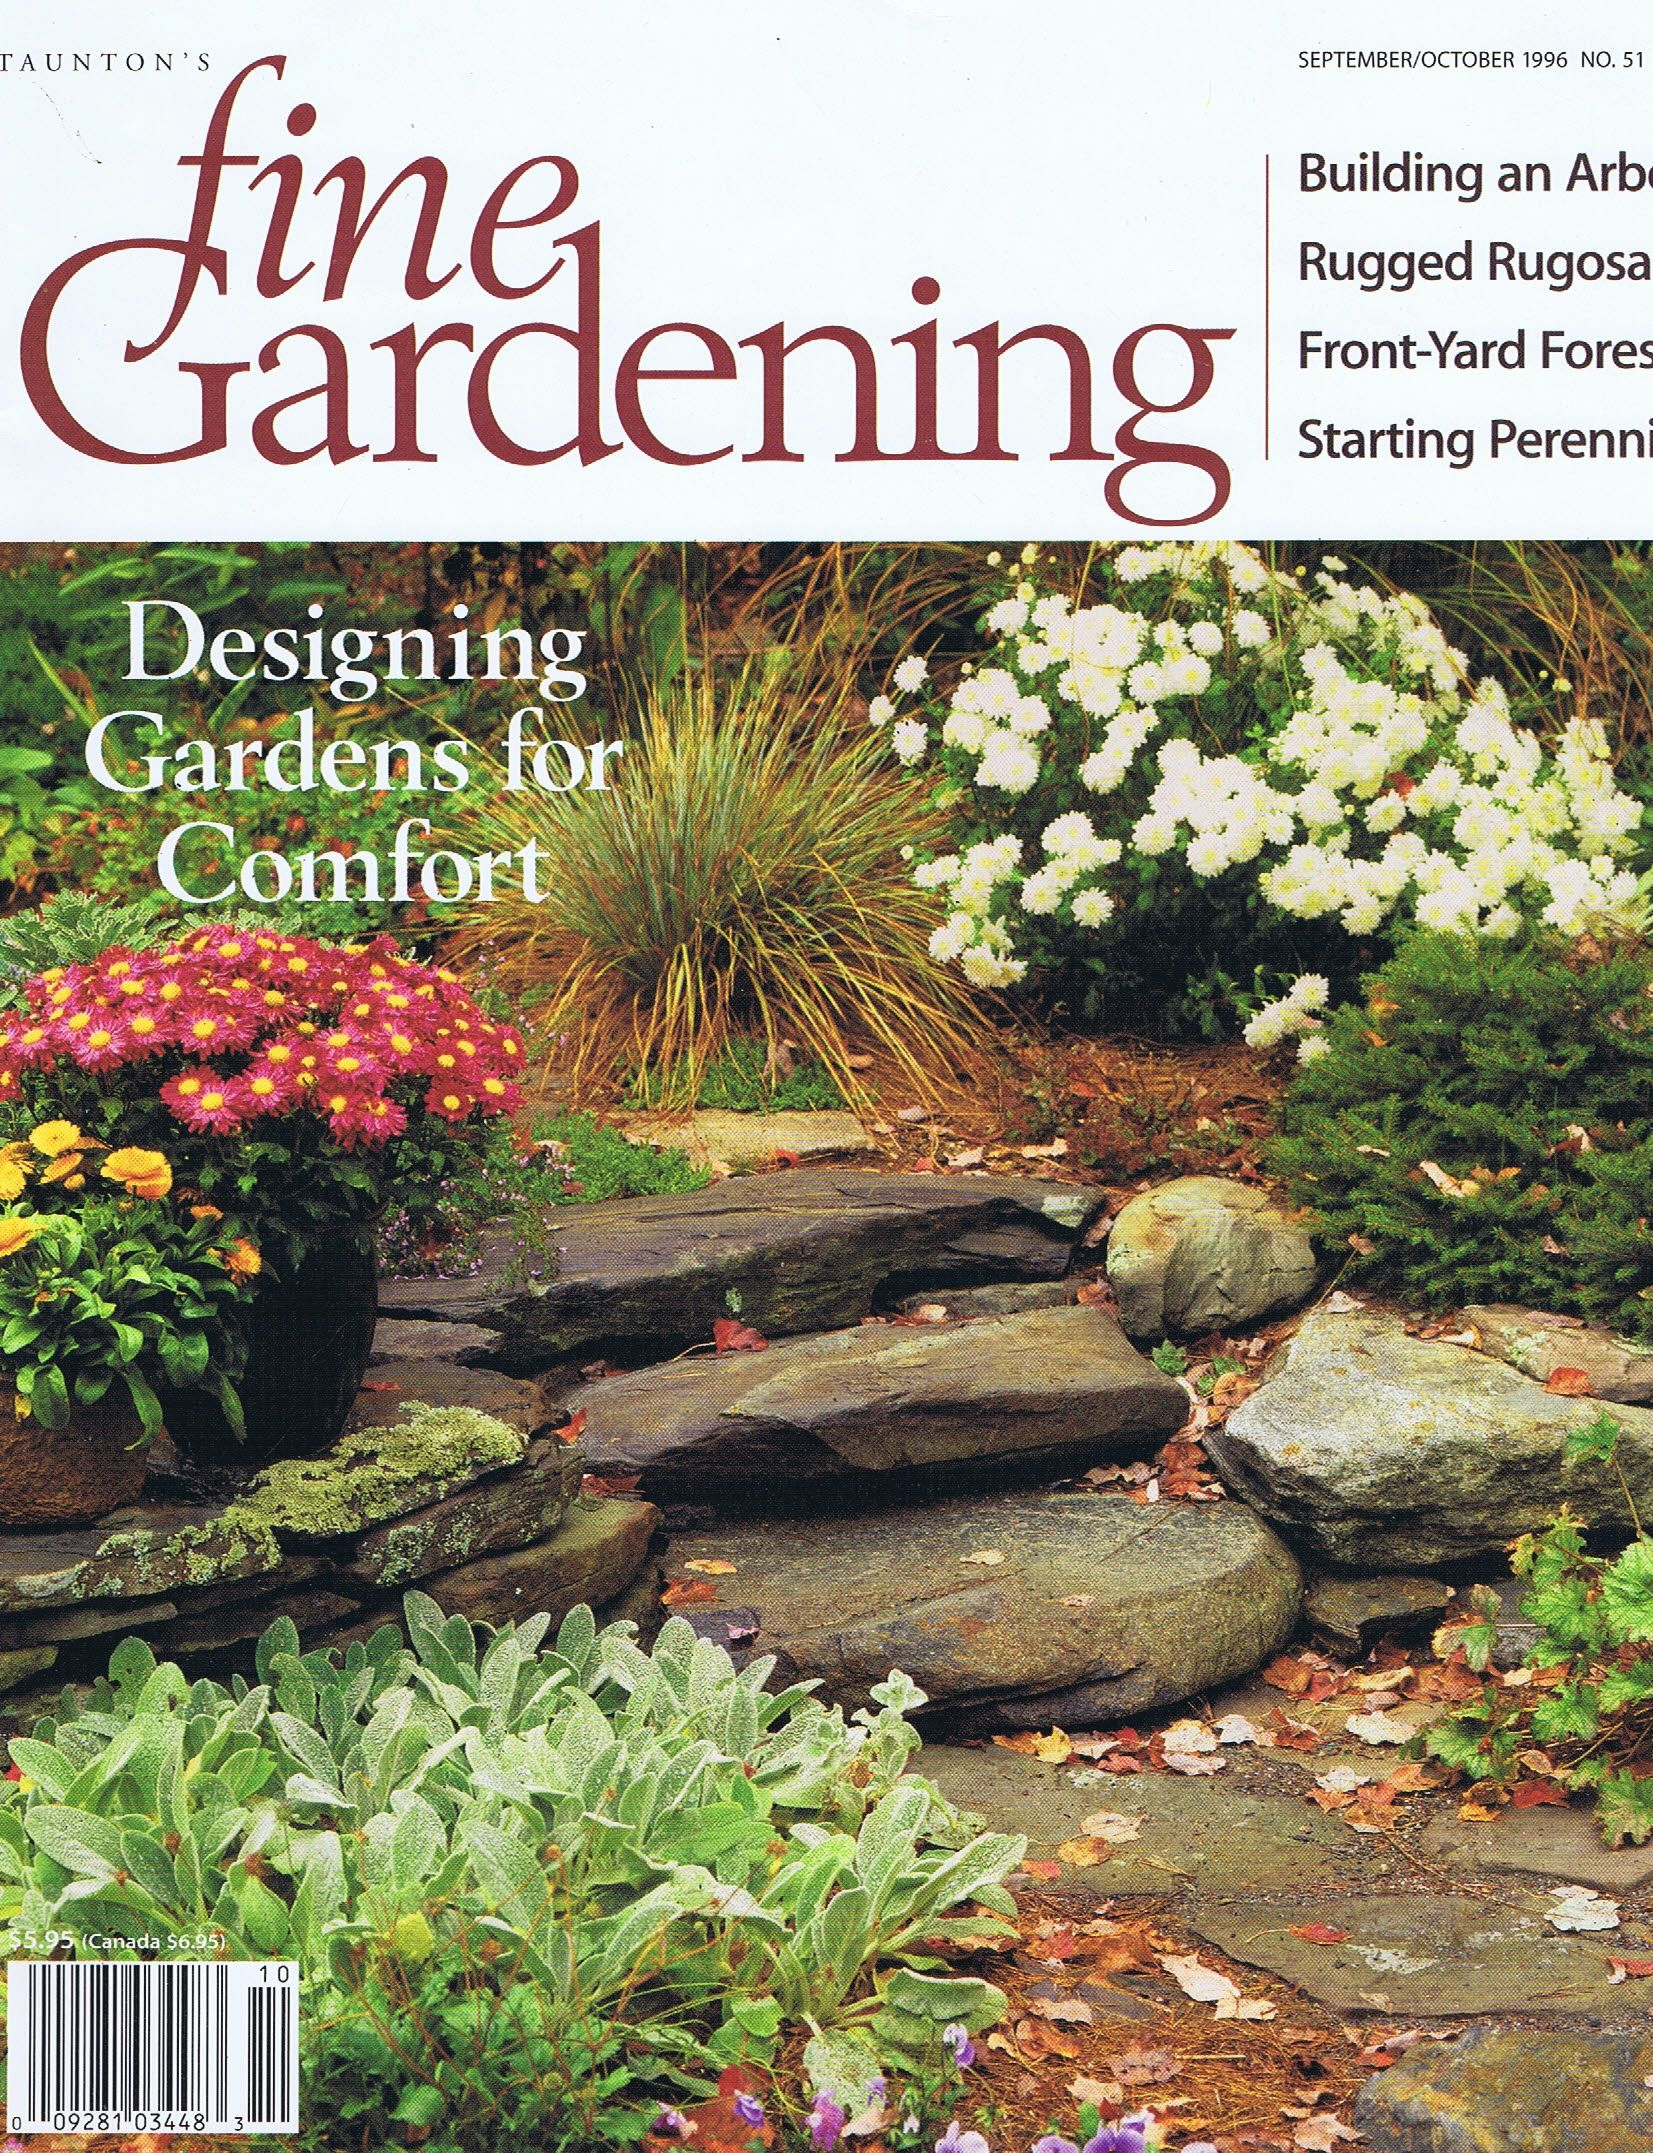 fine gardening magazine Outdoor ideas Pinterest Gardening